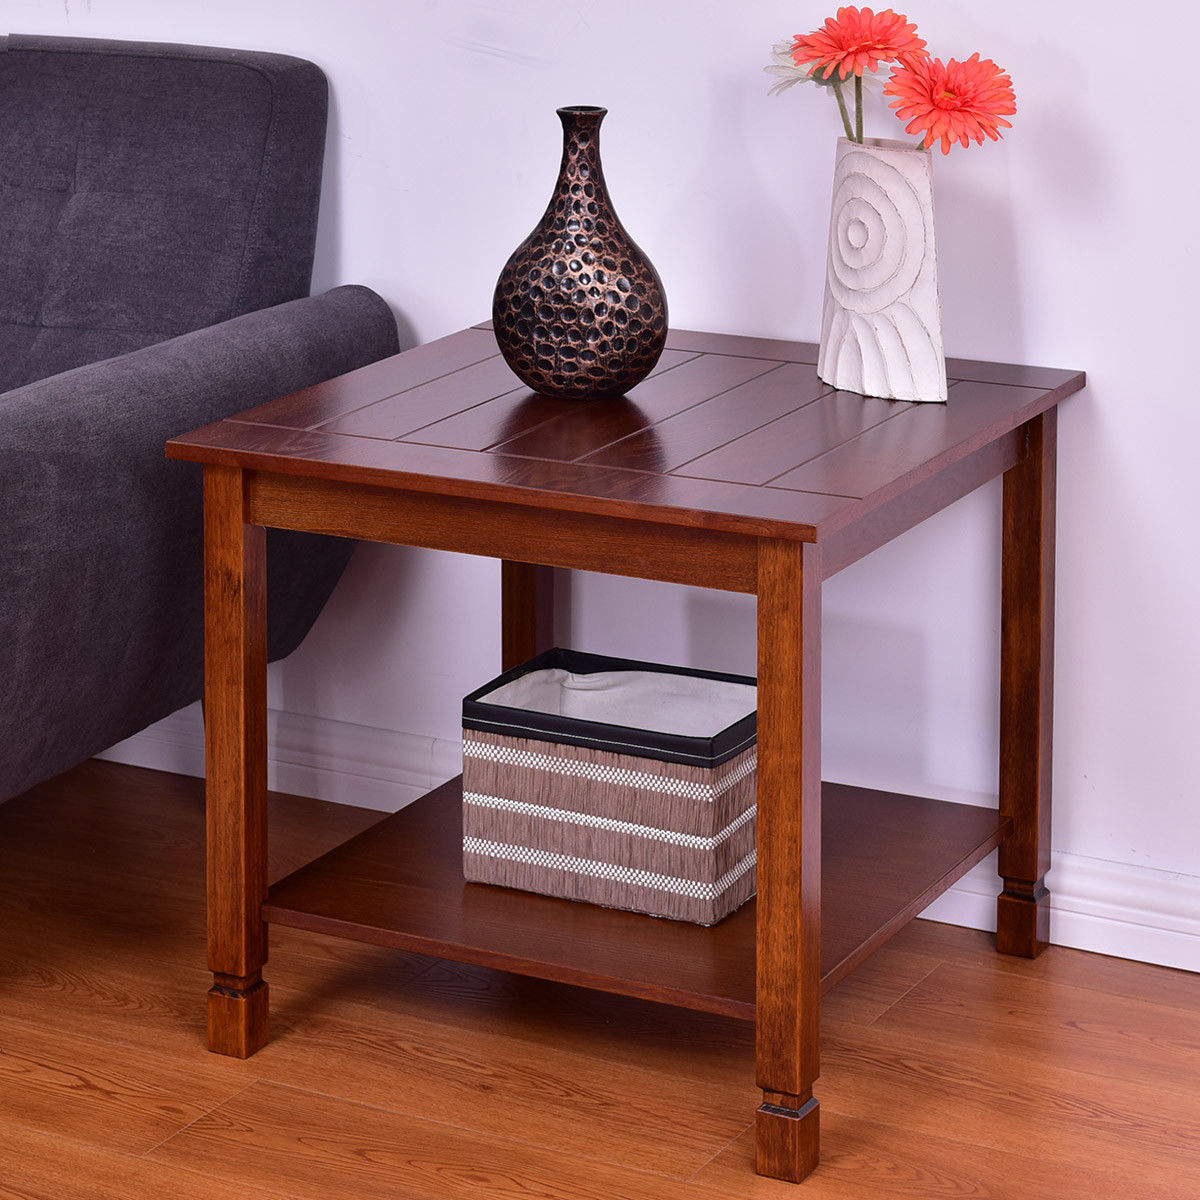 End Table For Living Room Us 45 99 Giantex Wood Side Table Living Room End Table Night Stand Coffee Table With Storage Shelf Walnut Wood Furniture Hw56279 In Coffee Tables